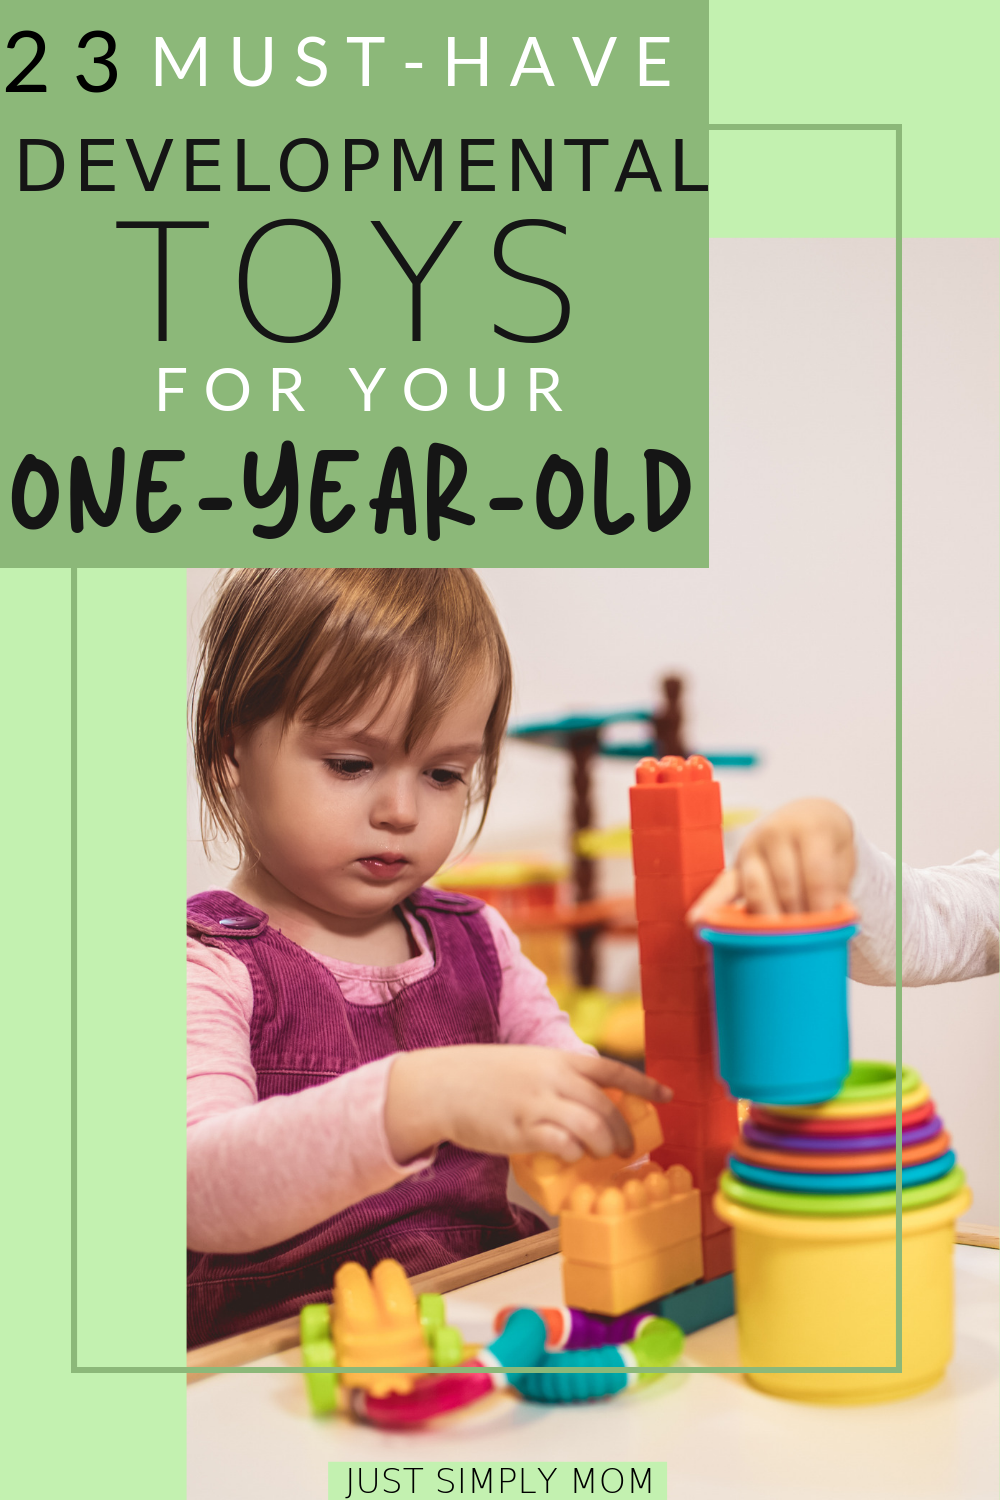 Best Developmental Toys for 1 Year Olds